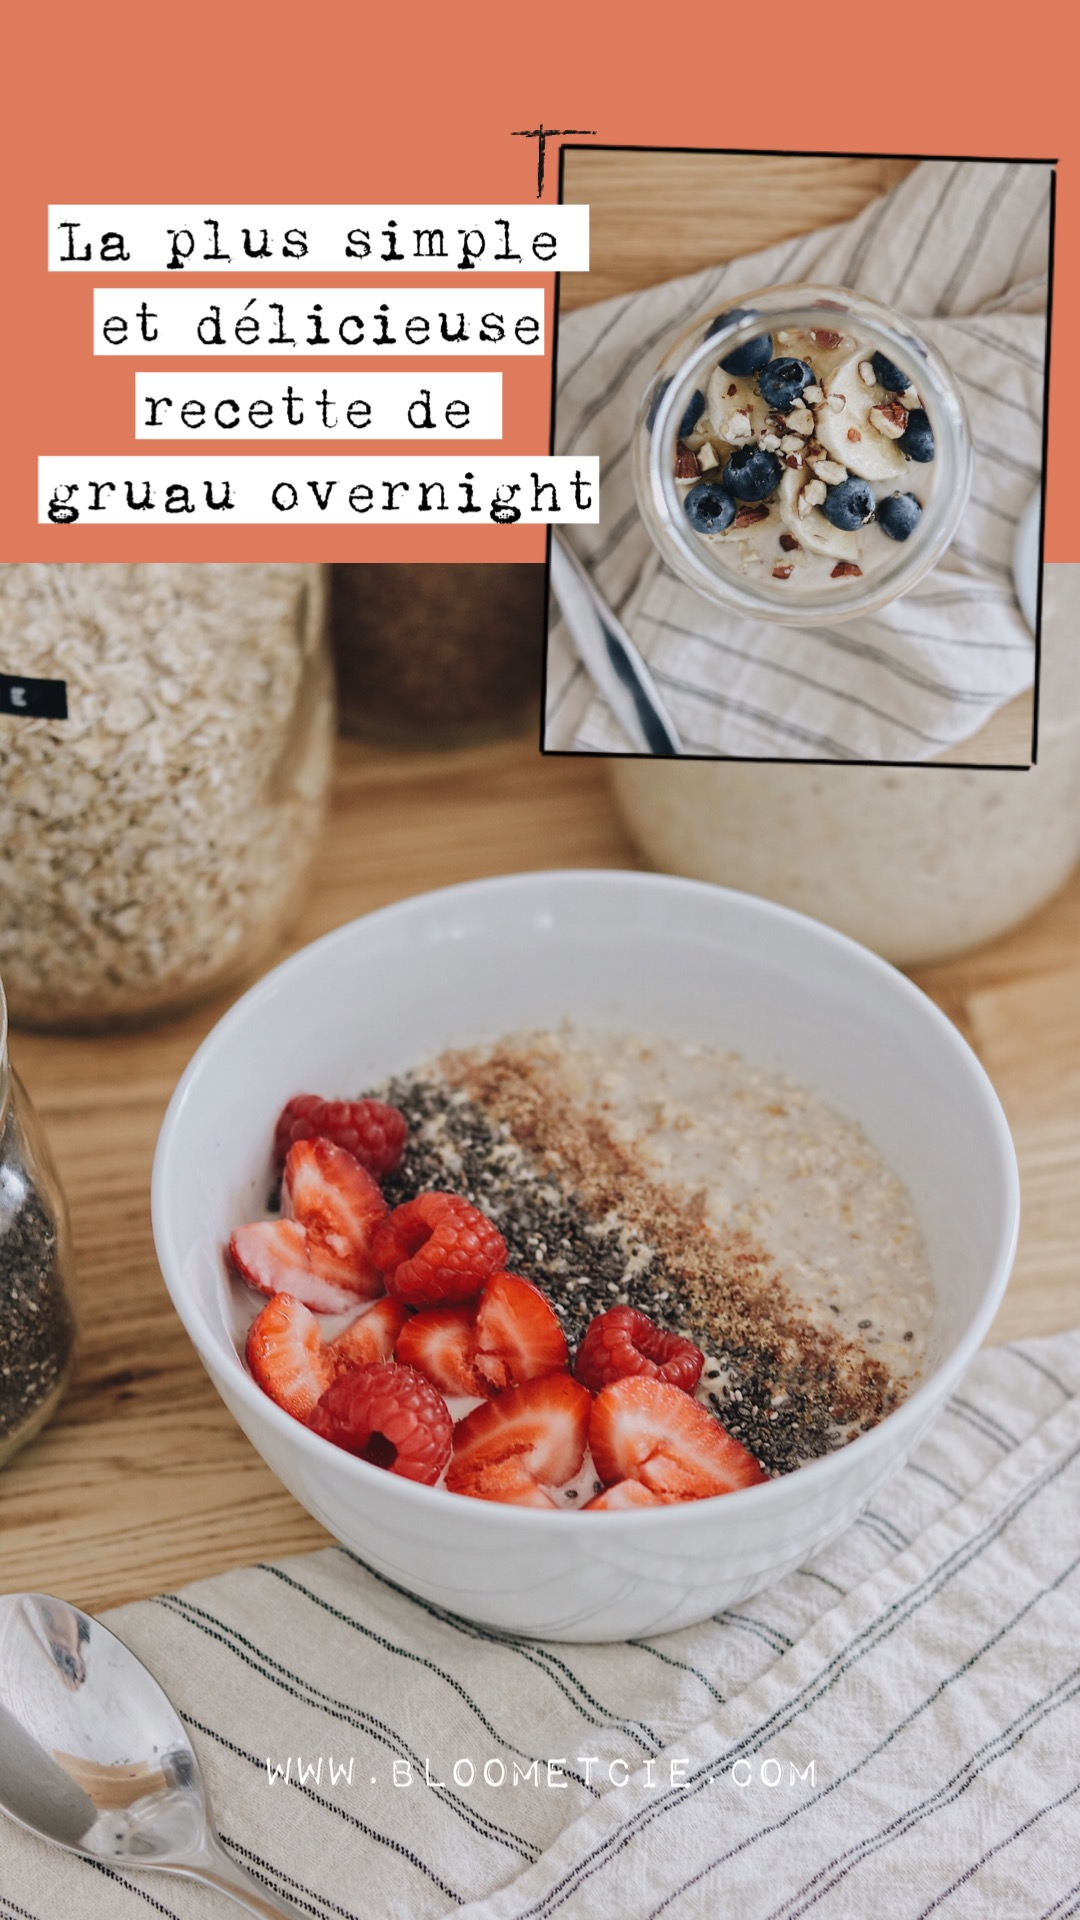 Gruau overnight - Pinterest